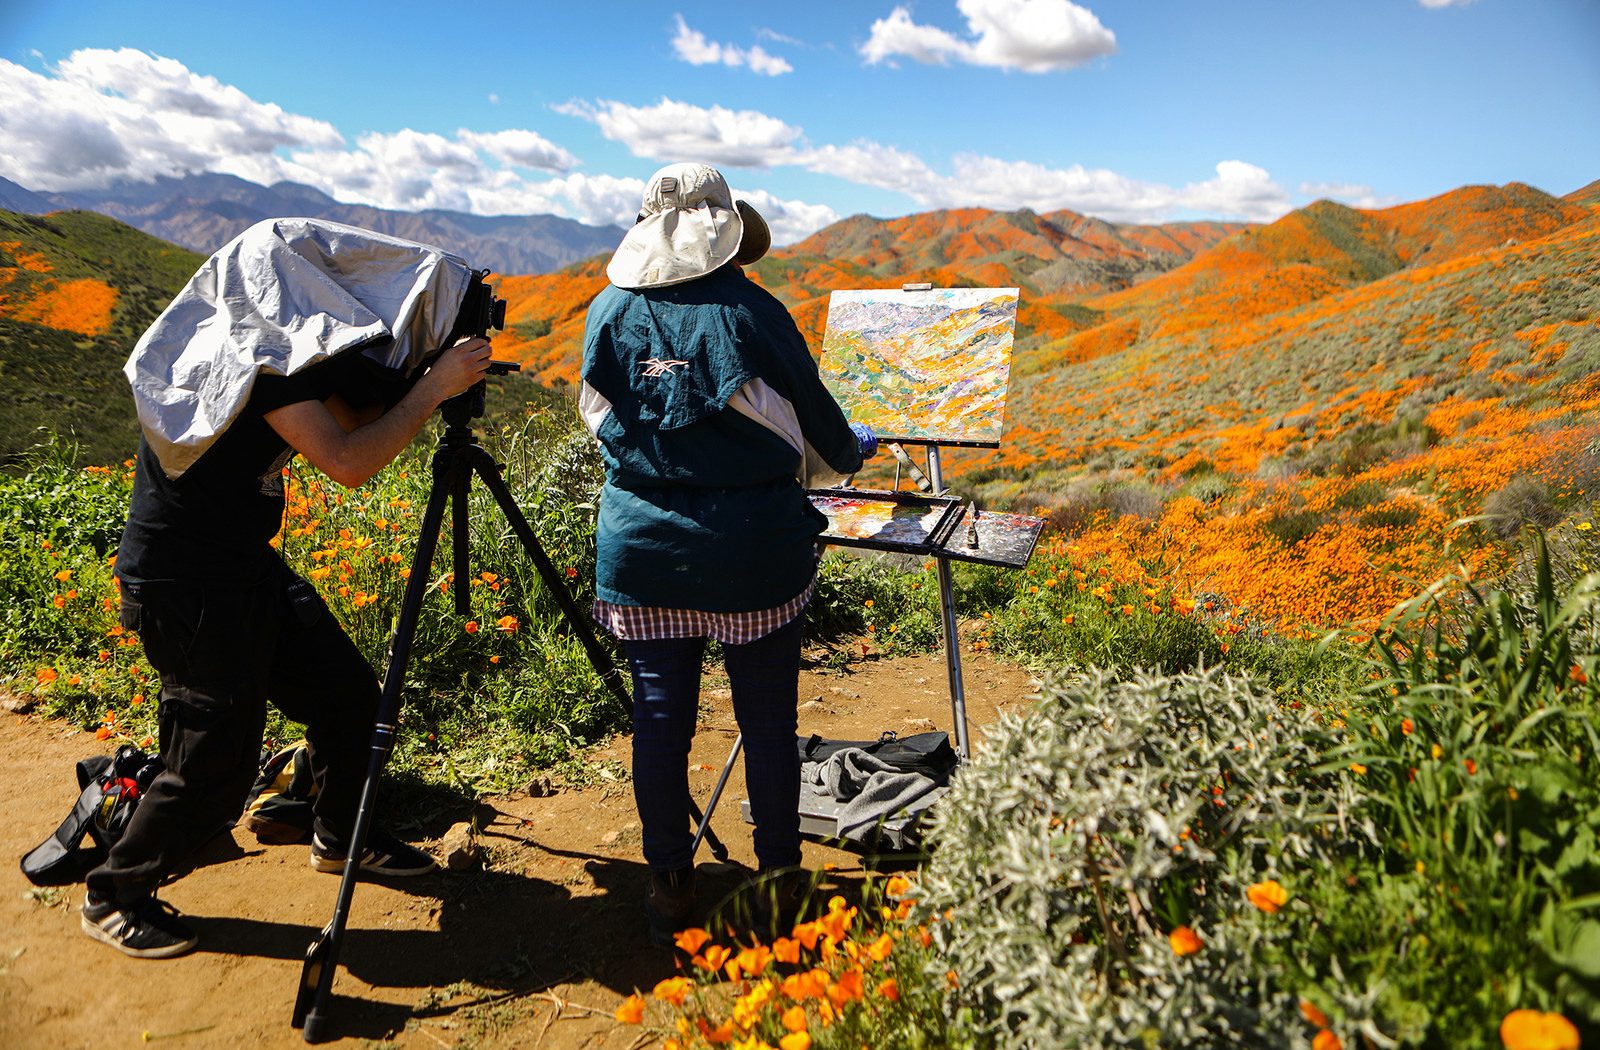 A man photographs a woman painting flowers, March 12.